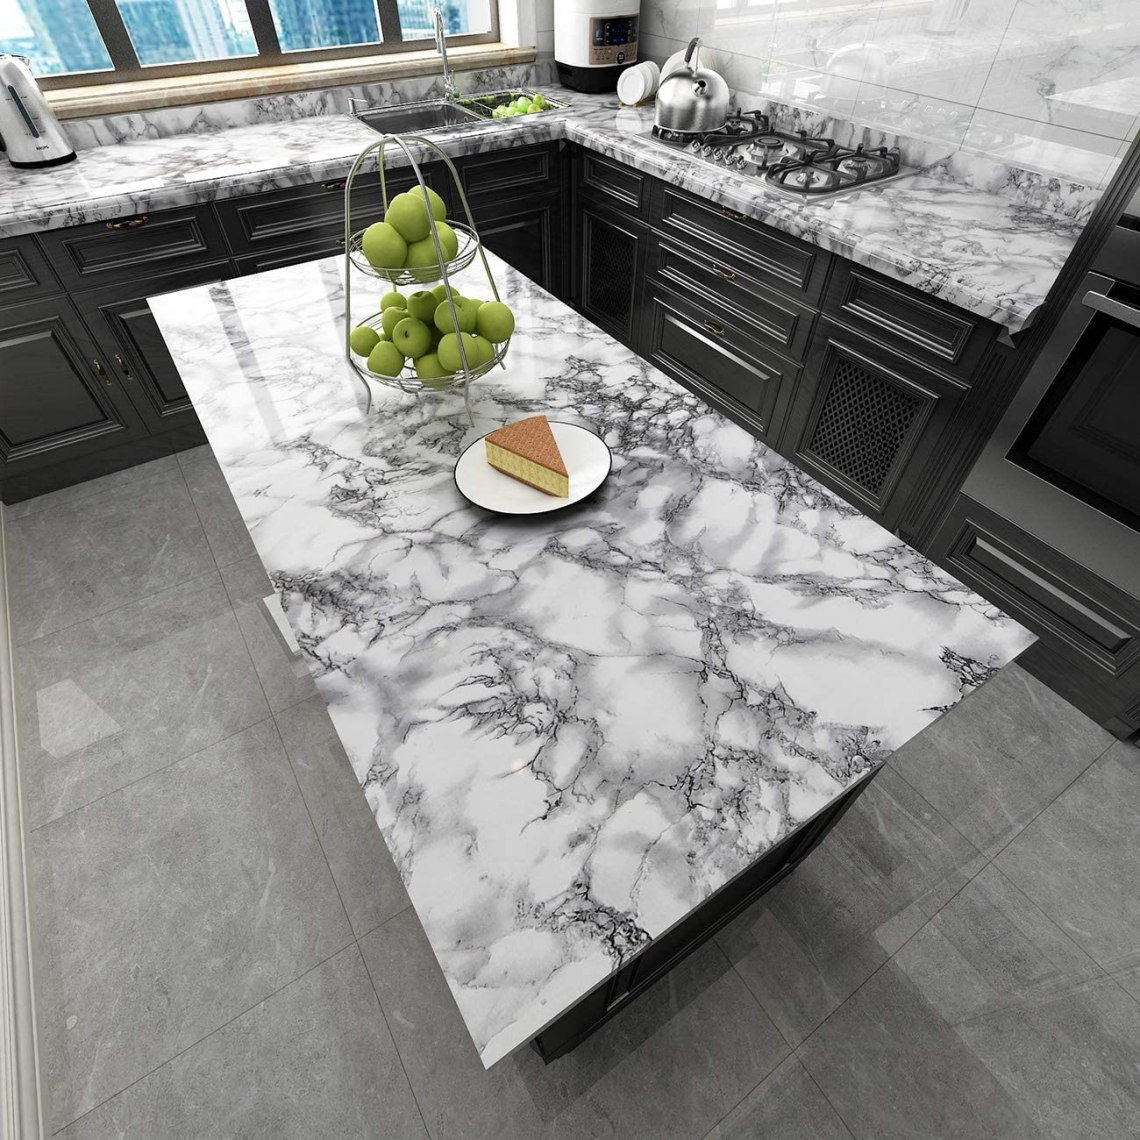 Amazon Com Homeme Marble Wallpaper 197 X 15 7 Self Adhesive Wallpaper Waterproof Oil Proof Decorative Removable Pvc Wall Paper For Kitchen Bathroom Countertop Cabinets Furniture Renovation Ink White Home Improvement